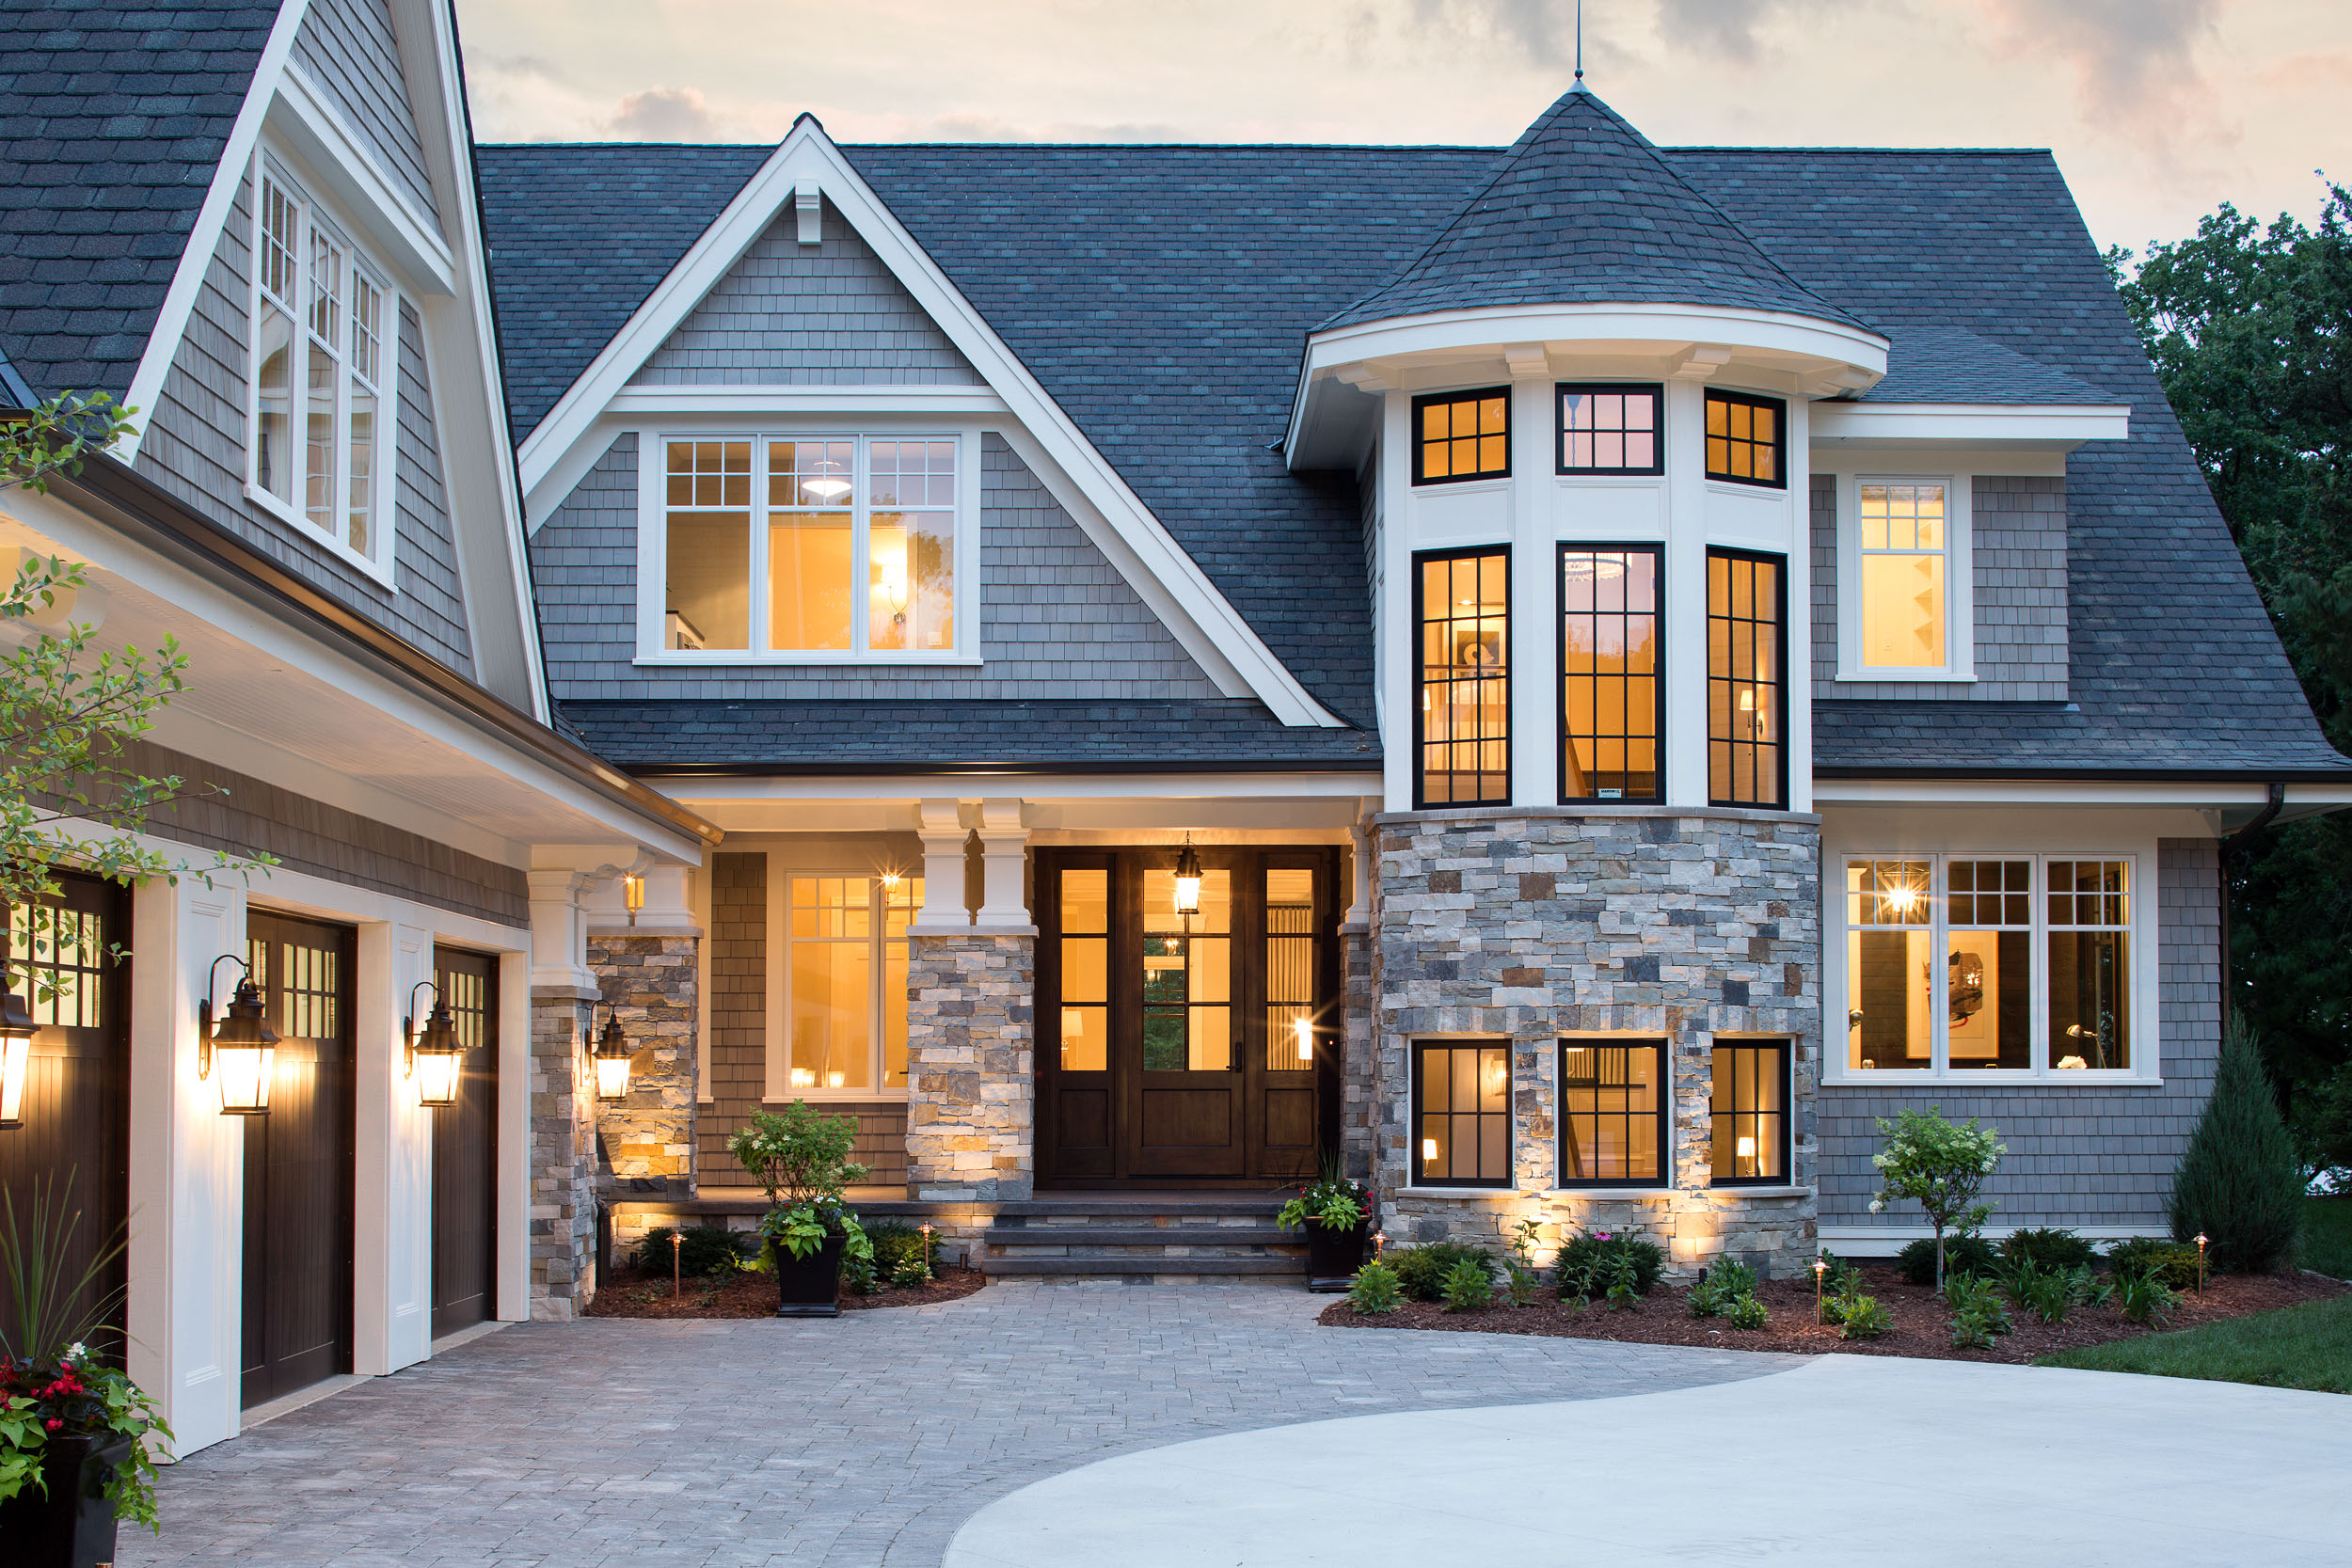 Lake Artisan Home Entry Image